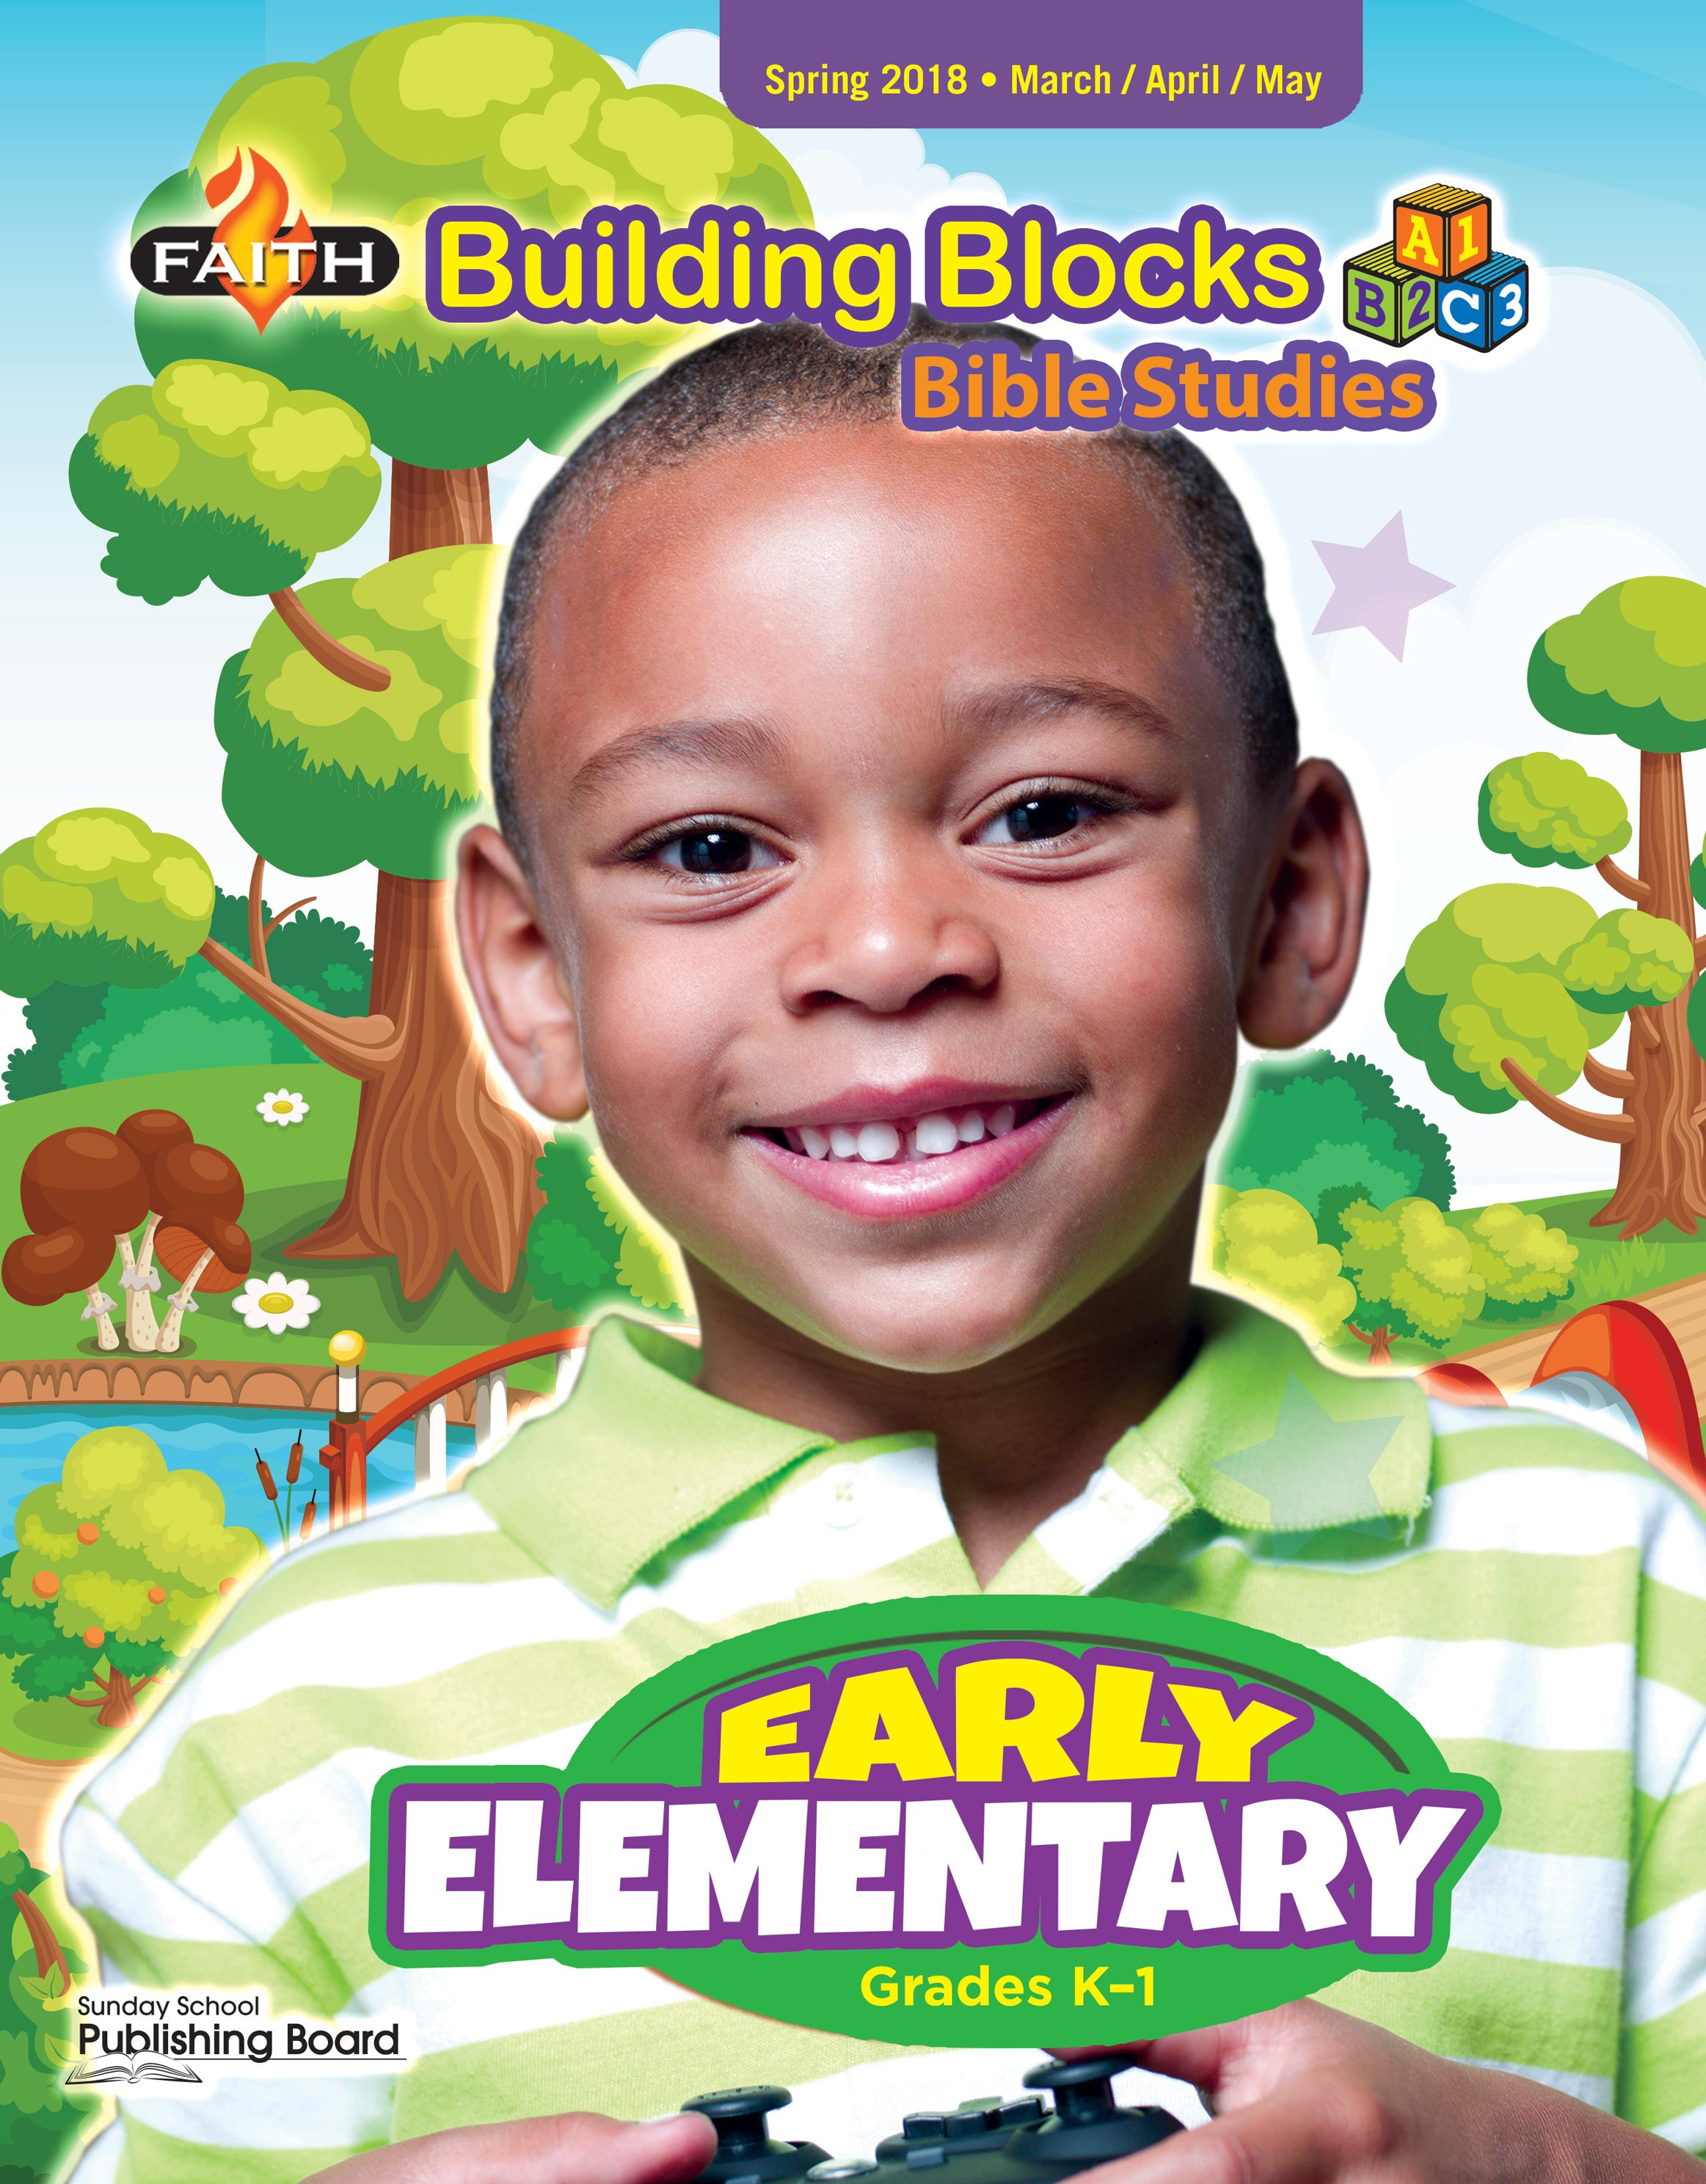 Faith Building Blocks Bible Studies, Early Elementary (Grades K-1)